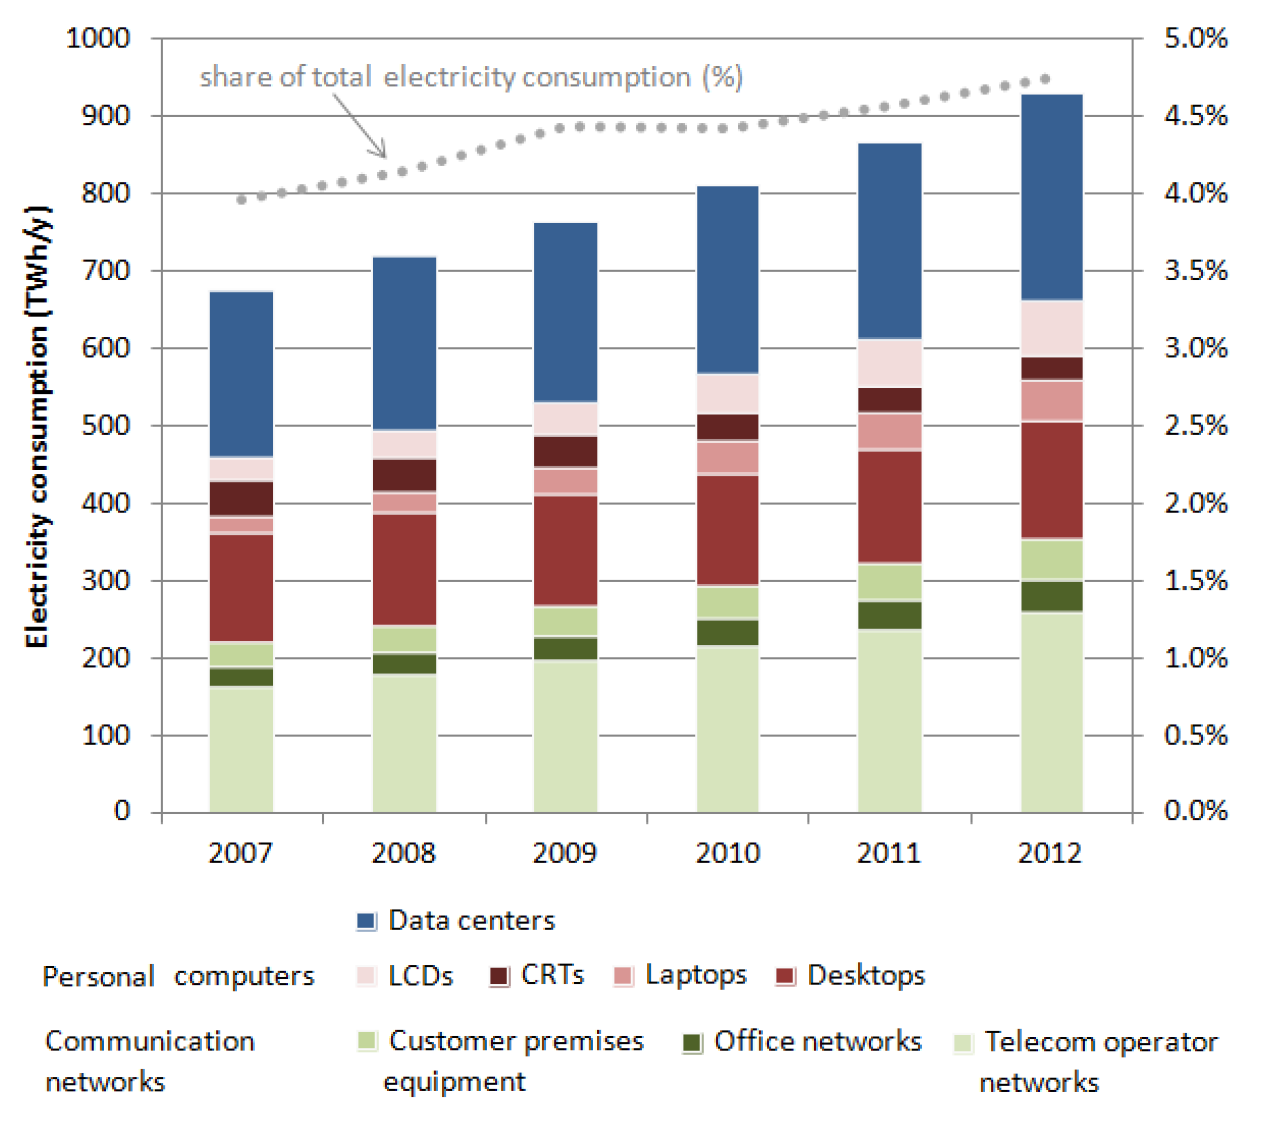 Special observance is required for the fast changing ICT sector. Figure 5 from [13] visualizes the worldwide energy consumption for Information and Communication Technology.